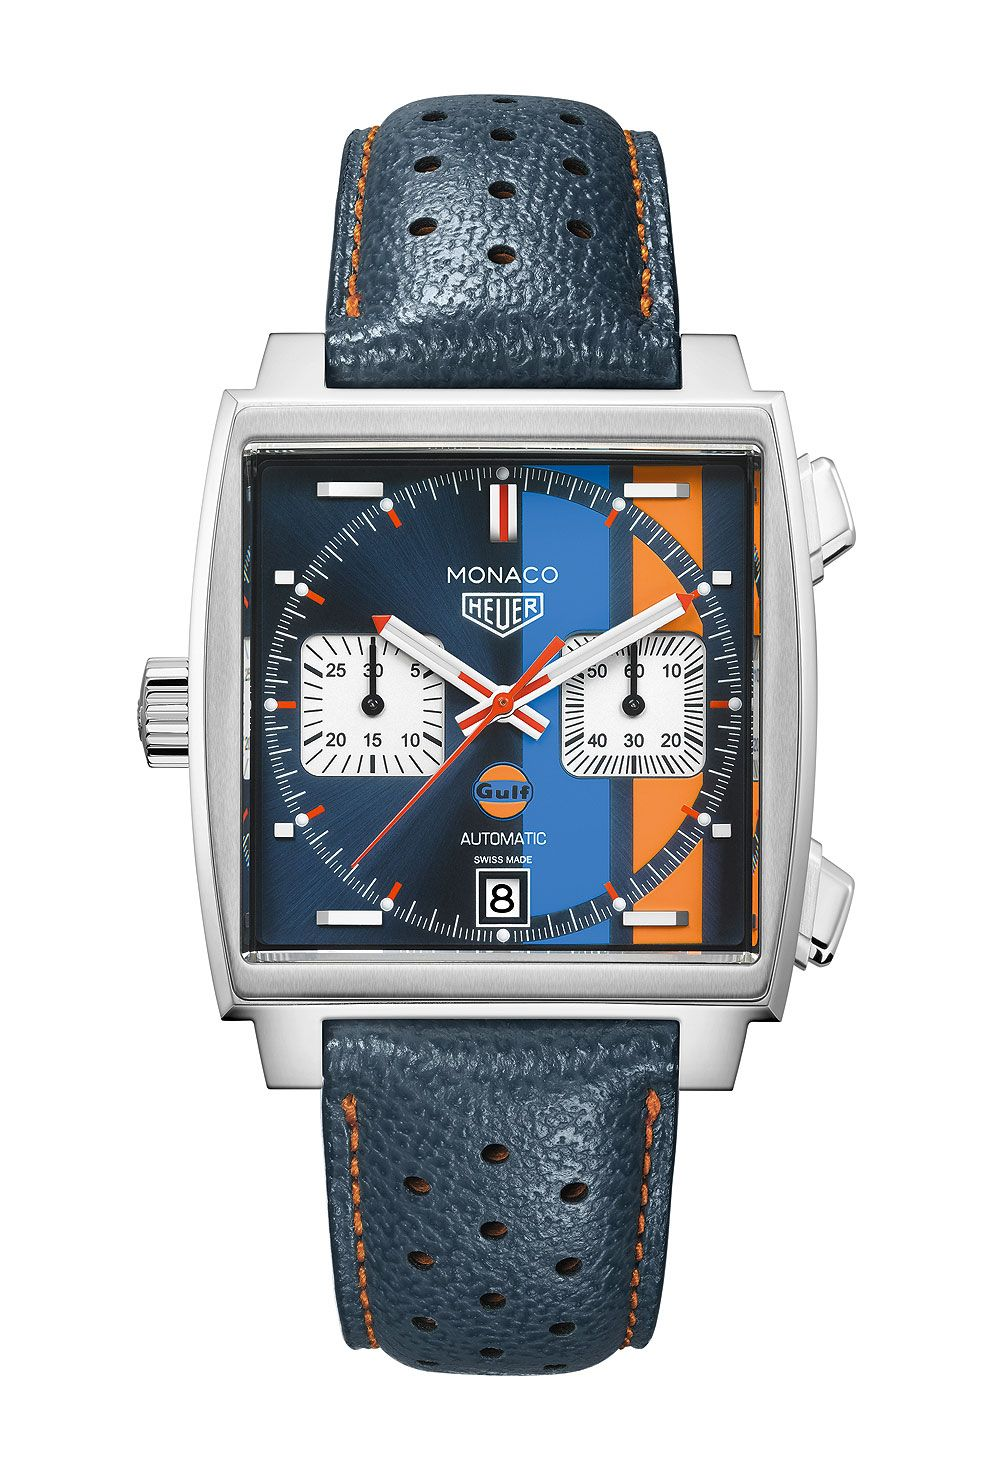 0551c286f TAG Heuer Monaco Gulf Special Edition Makes U.S. Debut at WatchTime ...